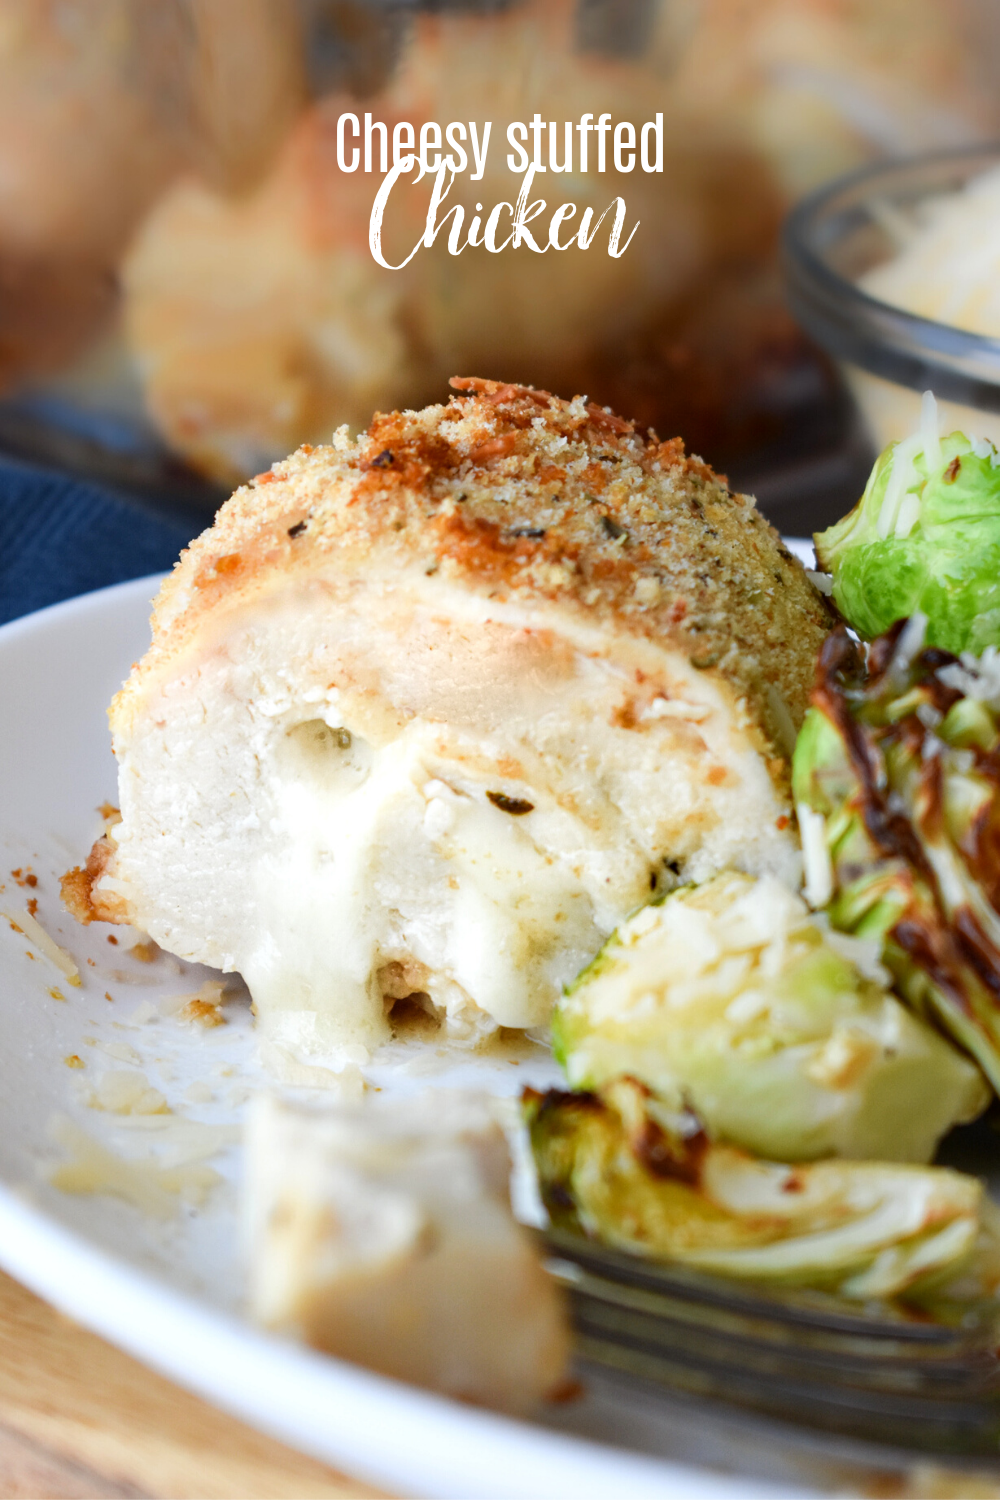 Cheese Stuffed Chicken Breasts, this ridiculously delicious dinner recipe is surprisingly easy to prepare! It's lower in carbs and takes only about 10 minutes to prepare. #recipe #stuffedchicken #familyfavorite #easy #chicken #cheese #dinner #baked #lowcarb #keto #Italian via @pmctunejones